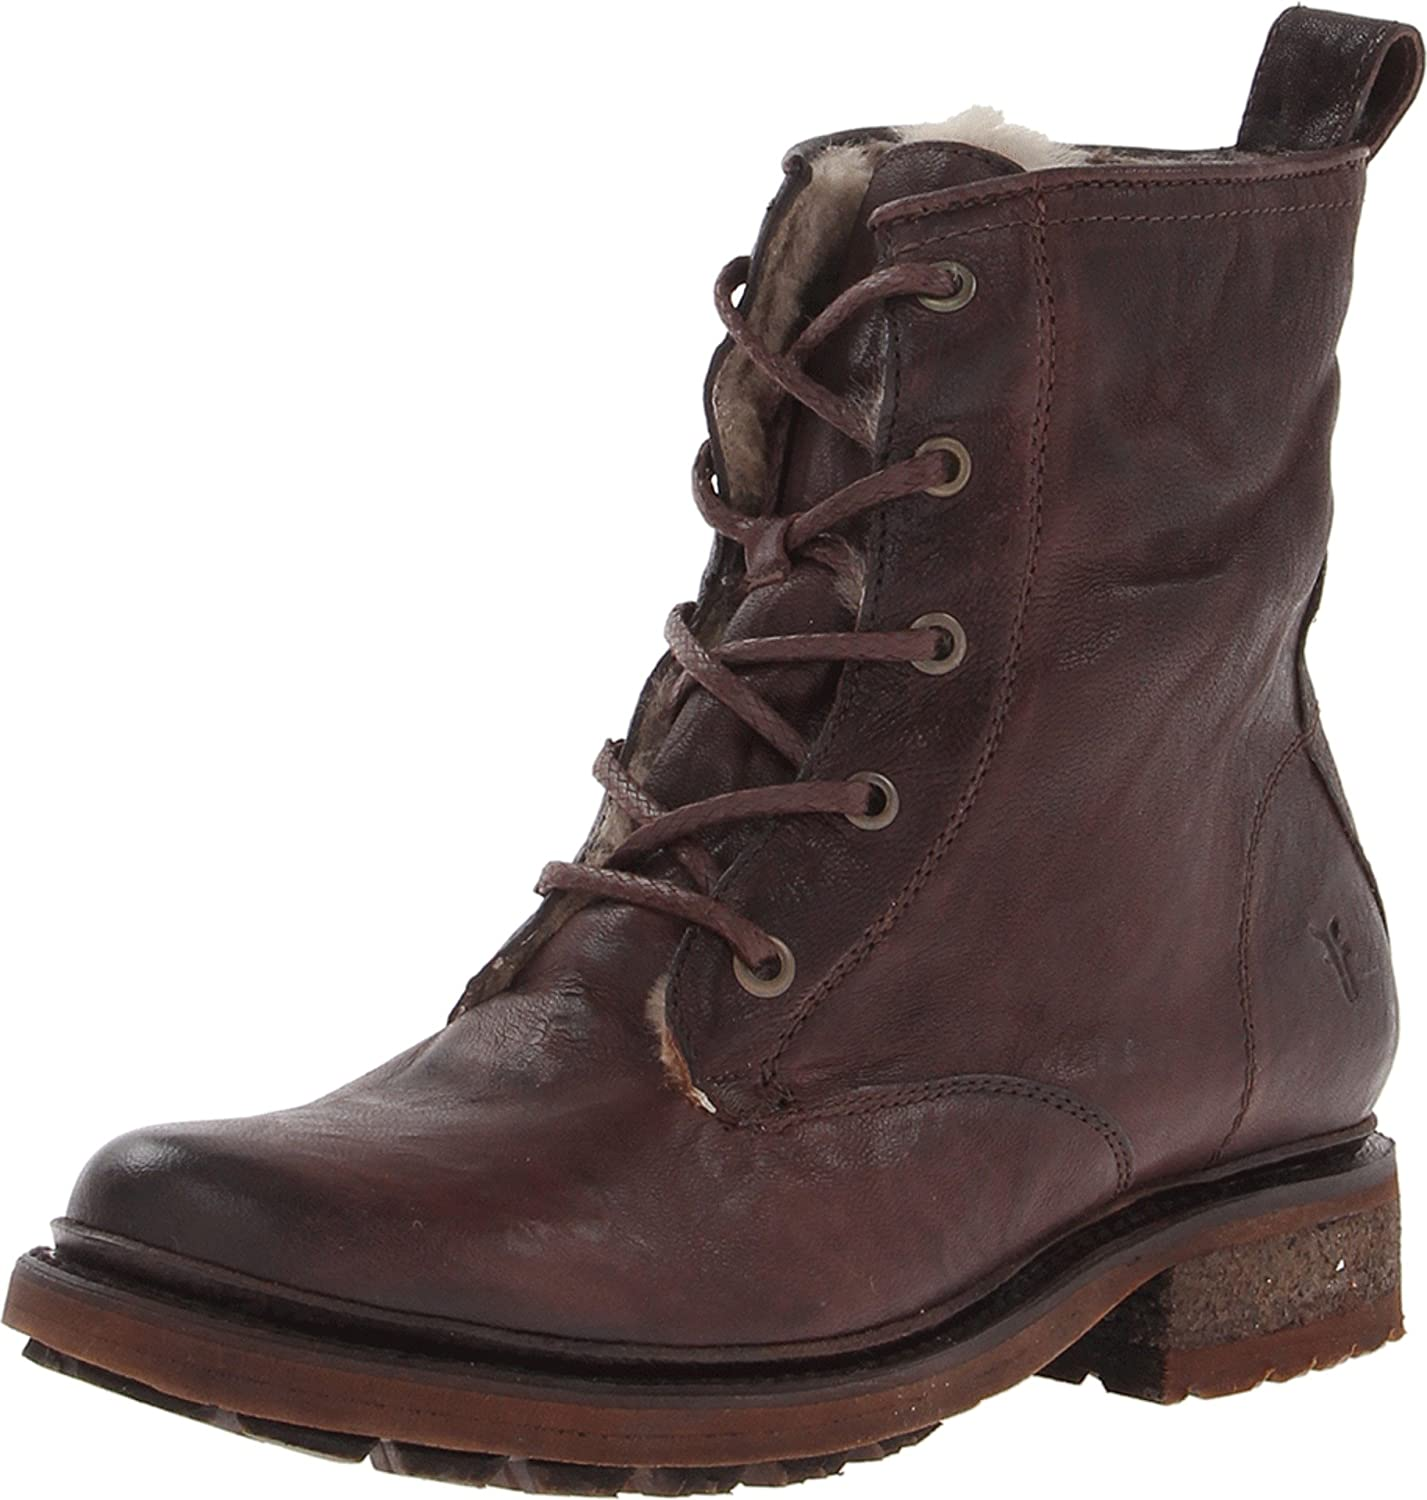 FRYE Women's Valerie Shearling Lace-Up Boot B00BGBS2Q6 11 B(M) US|Dark Brown-75017